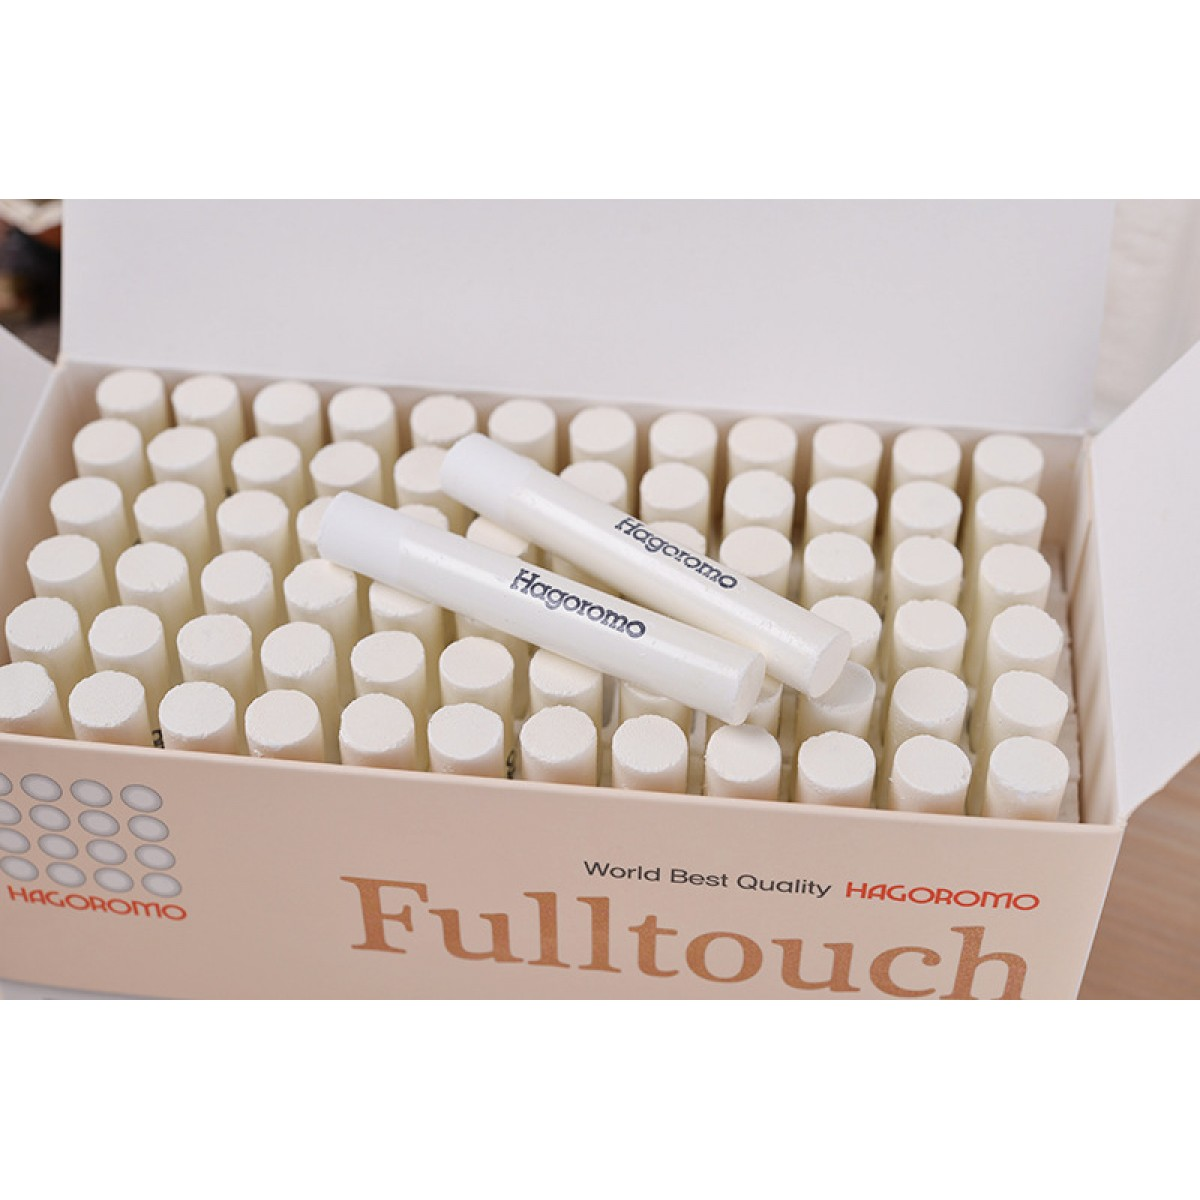 GENUINE HAGOROMO FULLTOUCH WHITE CHALK 72 PCS (MADE IN KOREA)